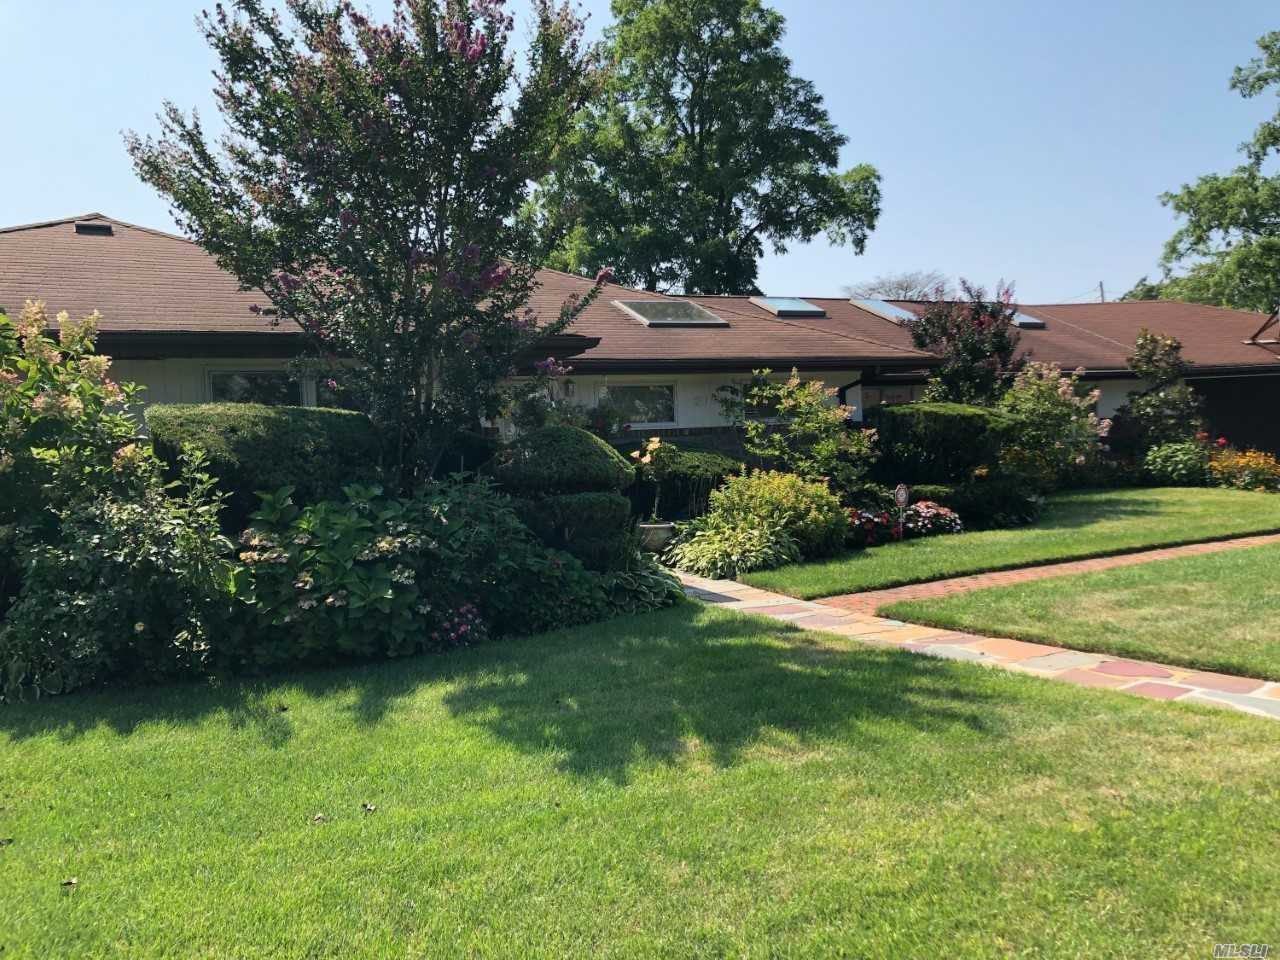 This Is Everything You Have Been Looking For! This Mint, Custom Sprawling Ranch On Large Property, Has It All! Location, Location, Location . On Protected Canal Adjacent To Beautiful Pond And Very Close To School, Stores And Transportation. It Is An Entertainer's Delight Inside As Well As On The Beautiful Country-Like Grounds. Motivated Seller.